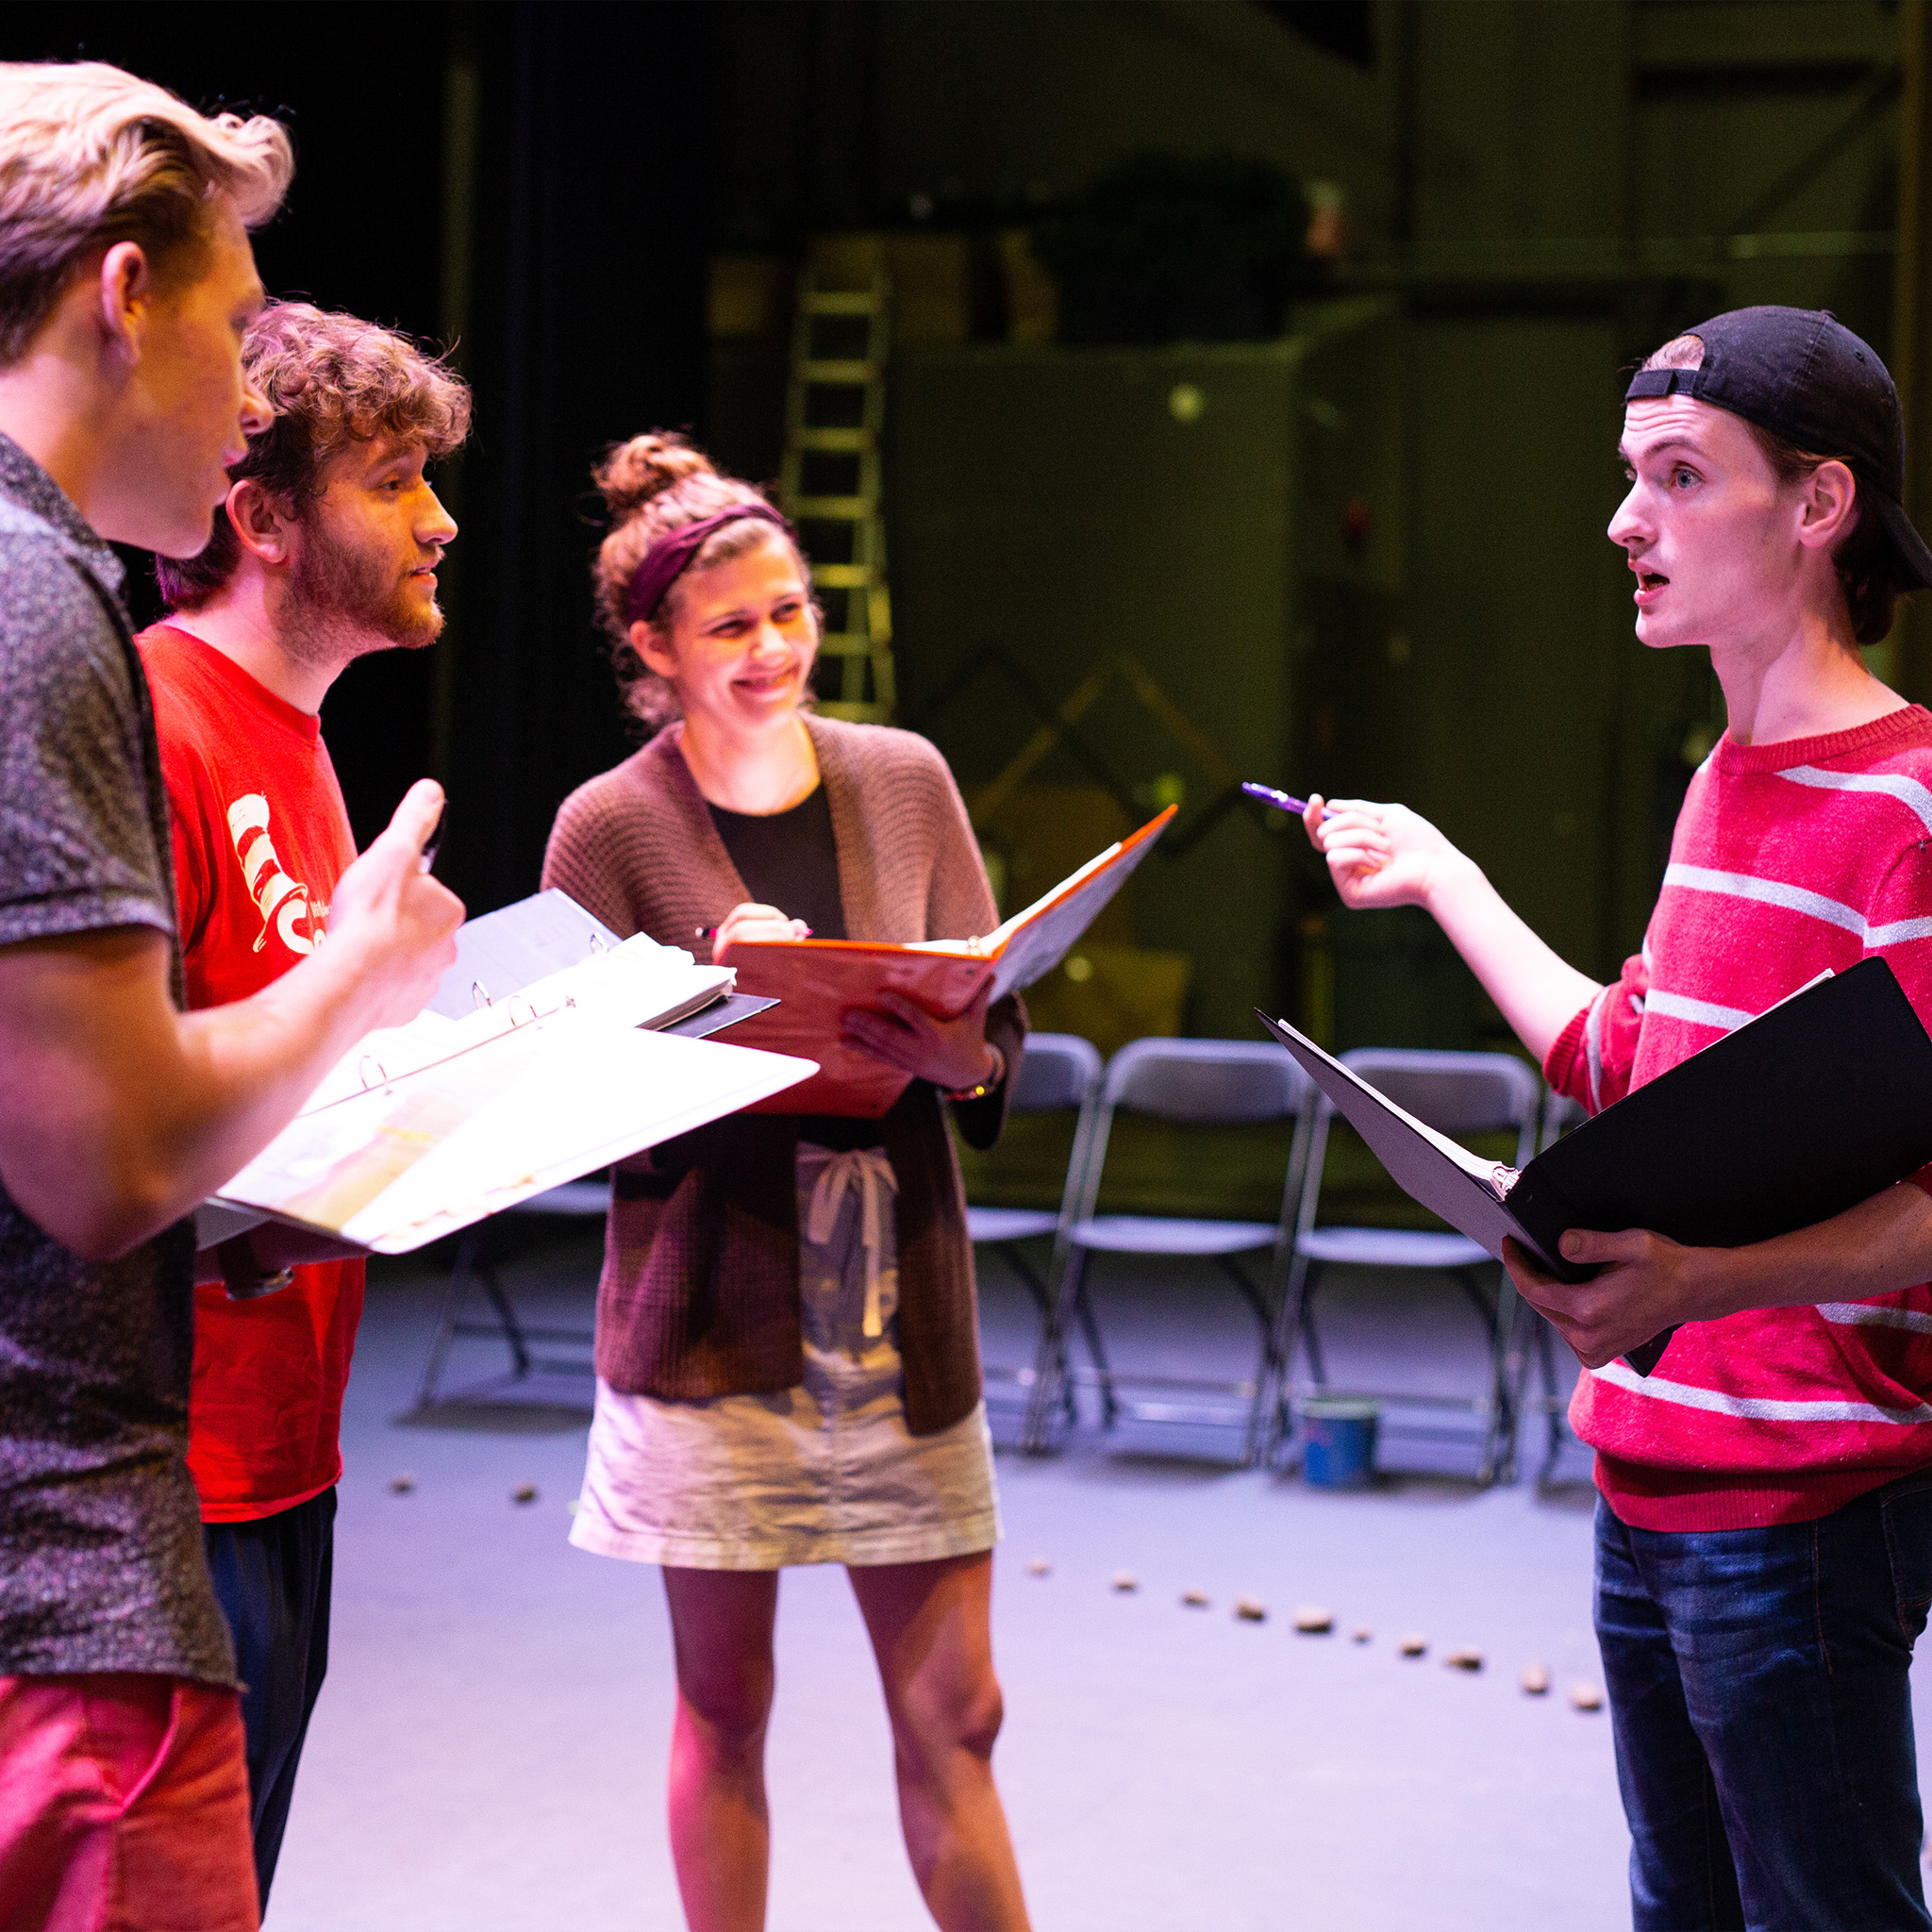 Theatre behind the scenes image, students discussing staging